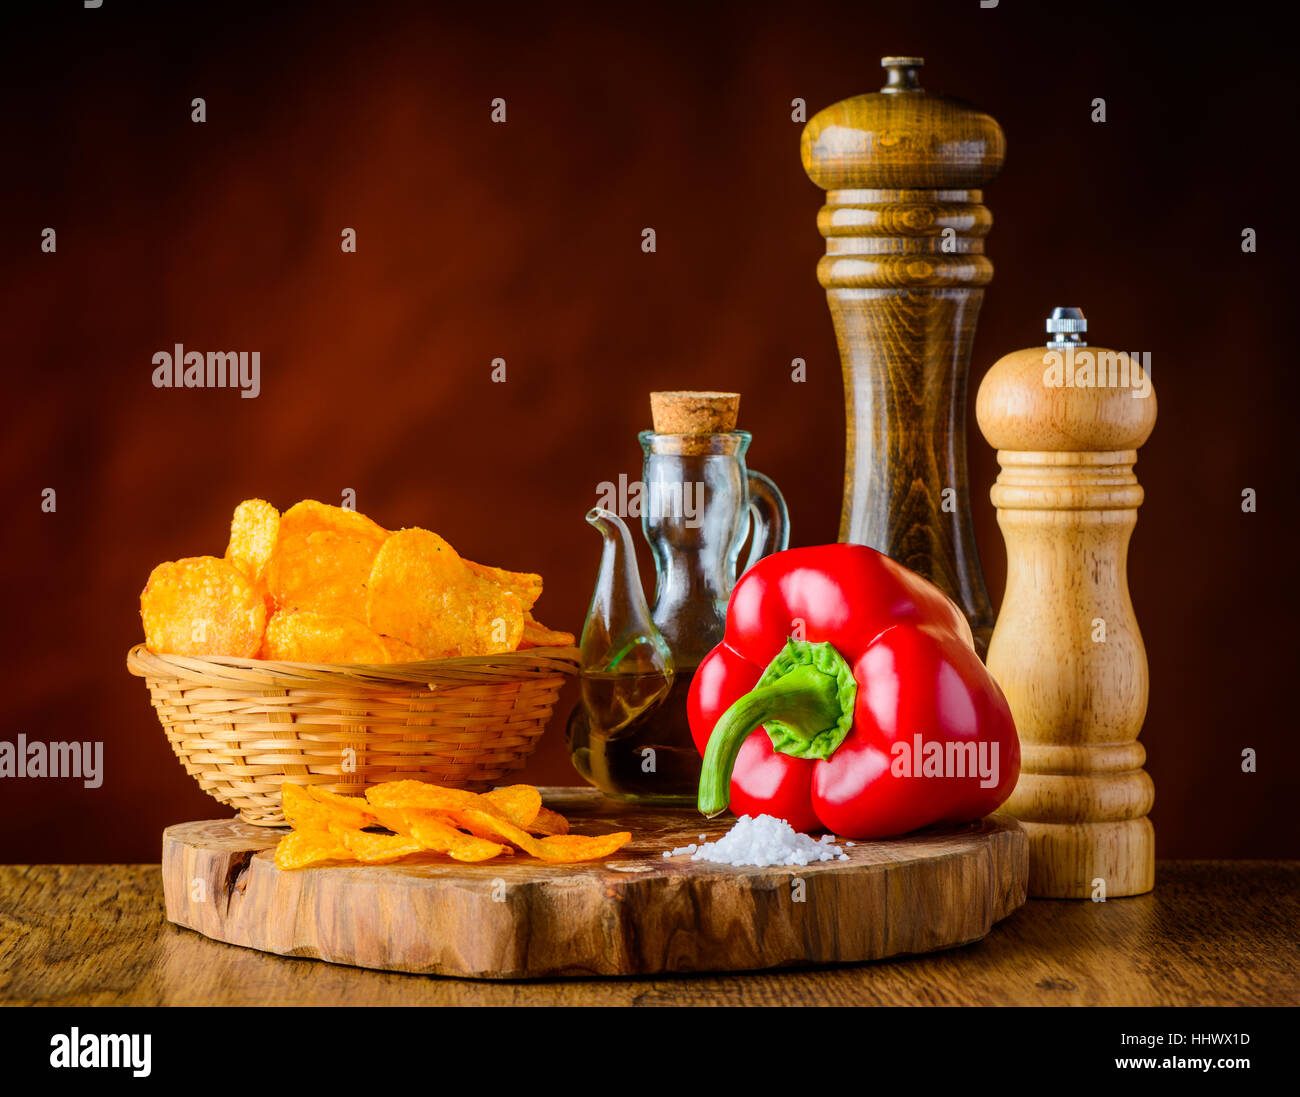 Red Pepper with Potato-Chips and Ingredients in Still Life - Stock Image